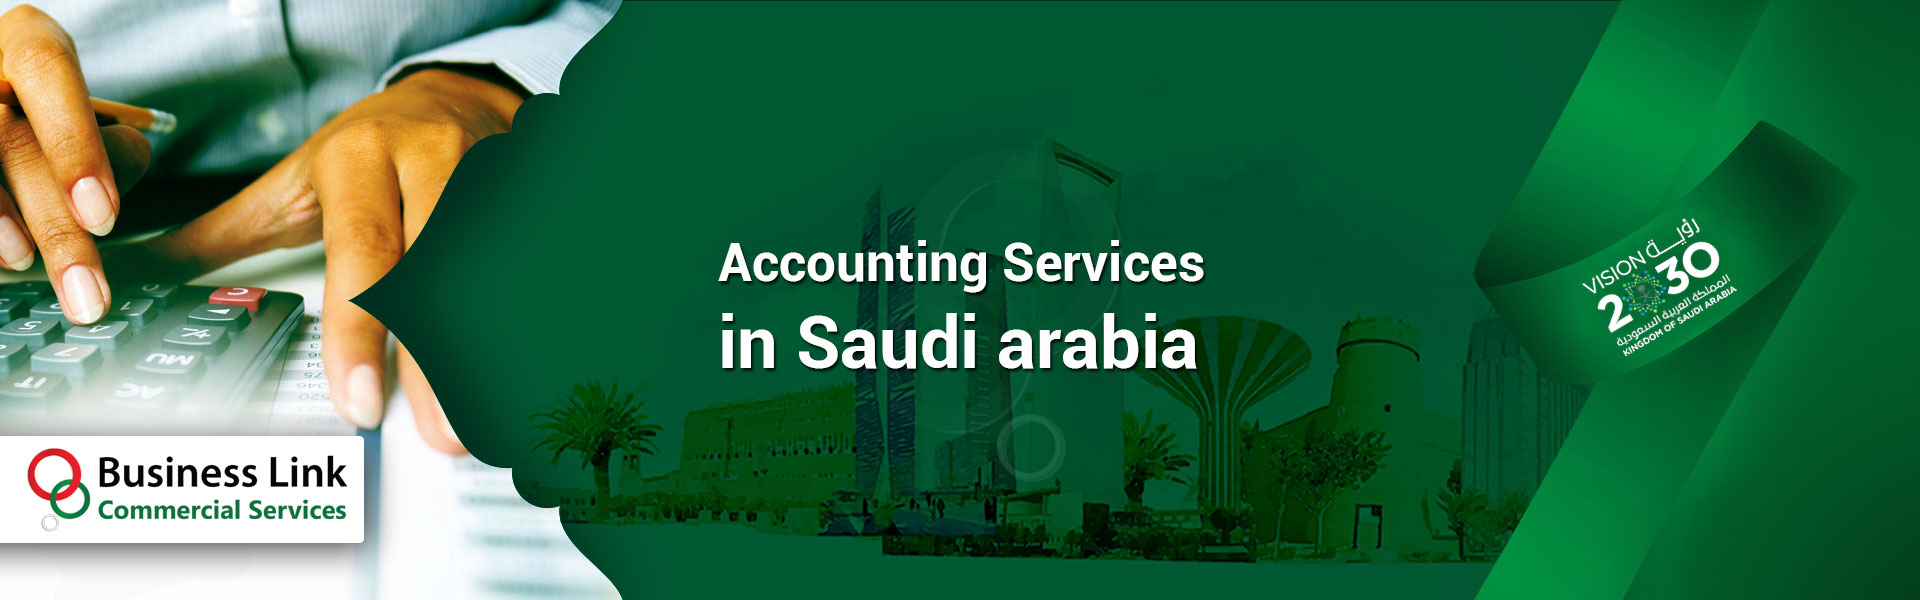 Accounting Services in KSA